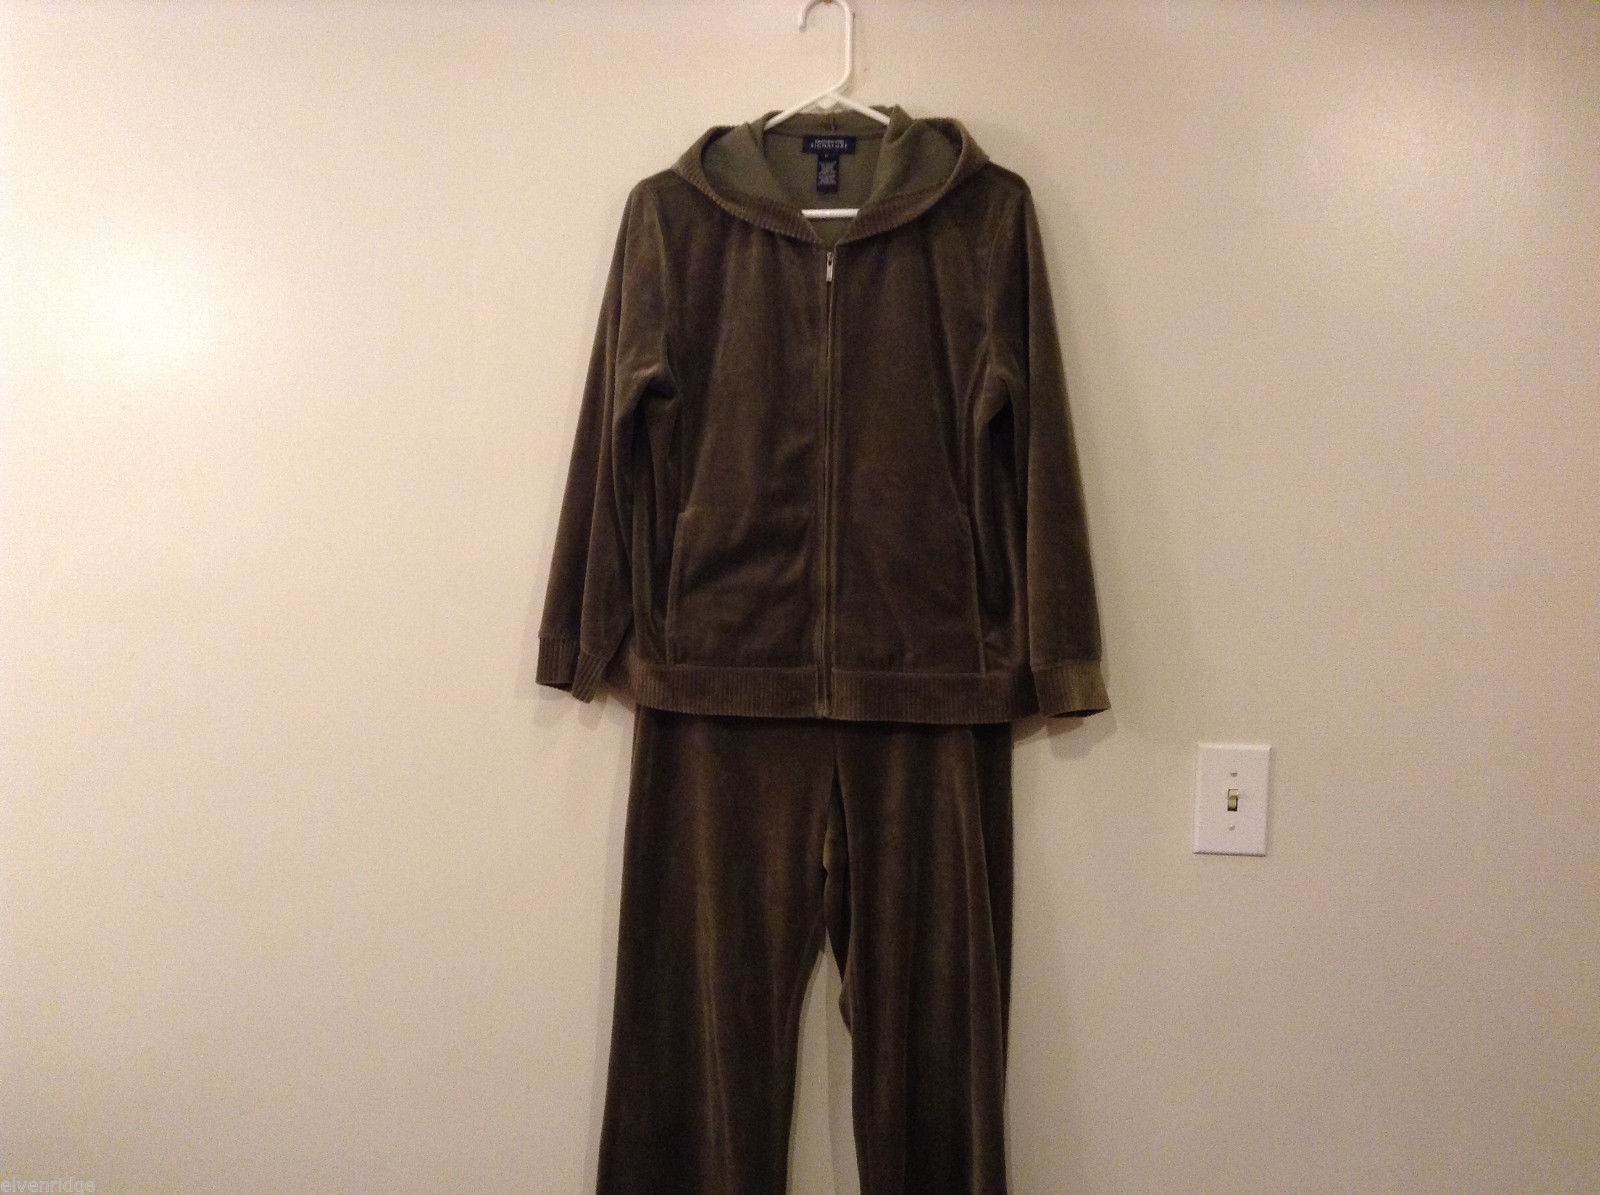 Womes Jones New York Signature Olive Green Spot Hoodie and Pants Set Size M/L